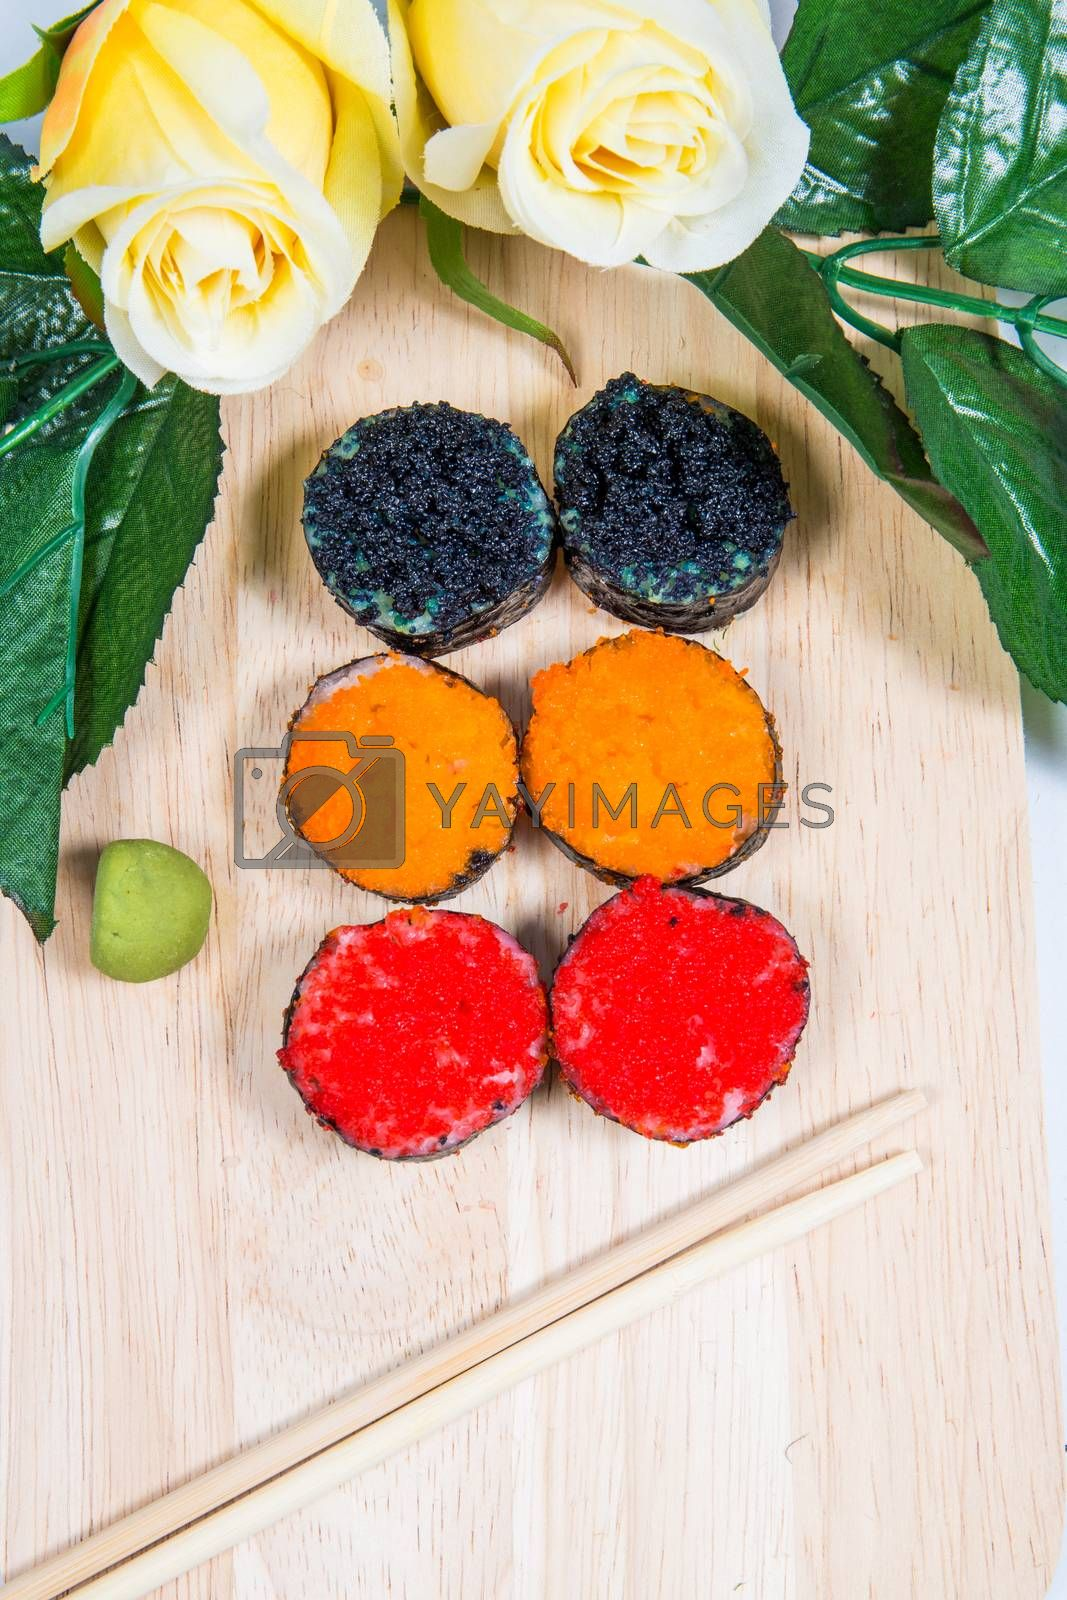 Royalty free image of sushi by tuchkay